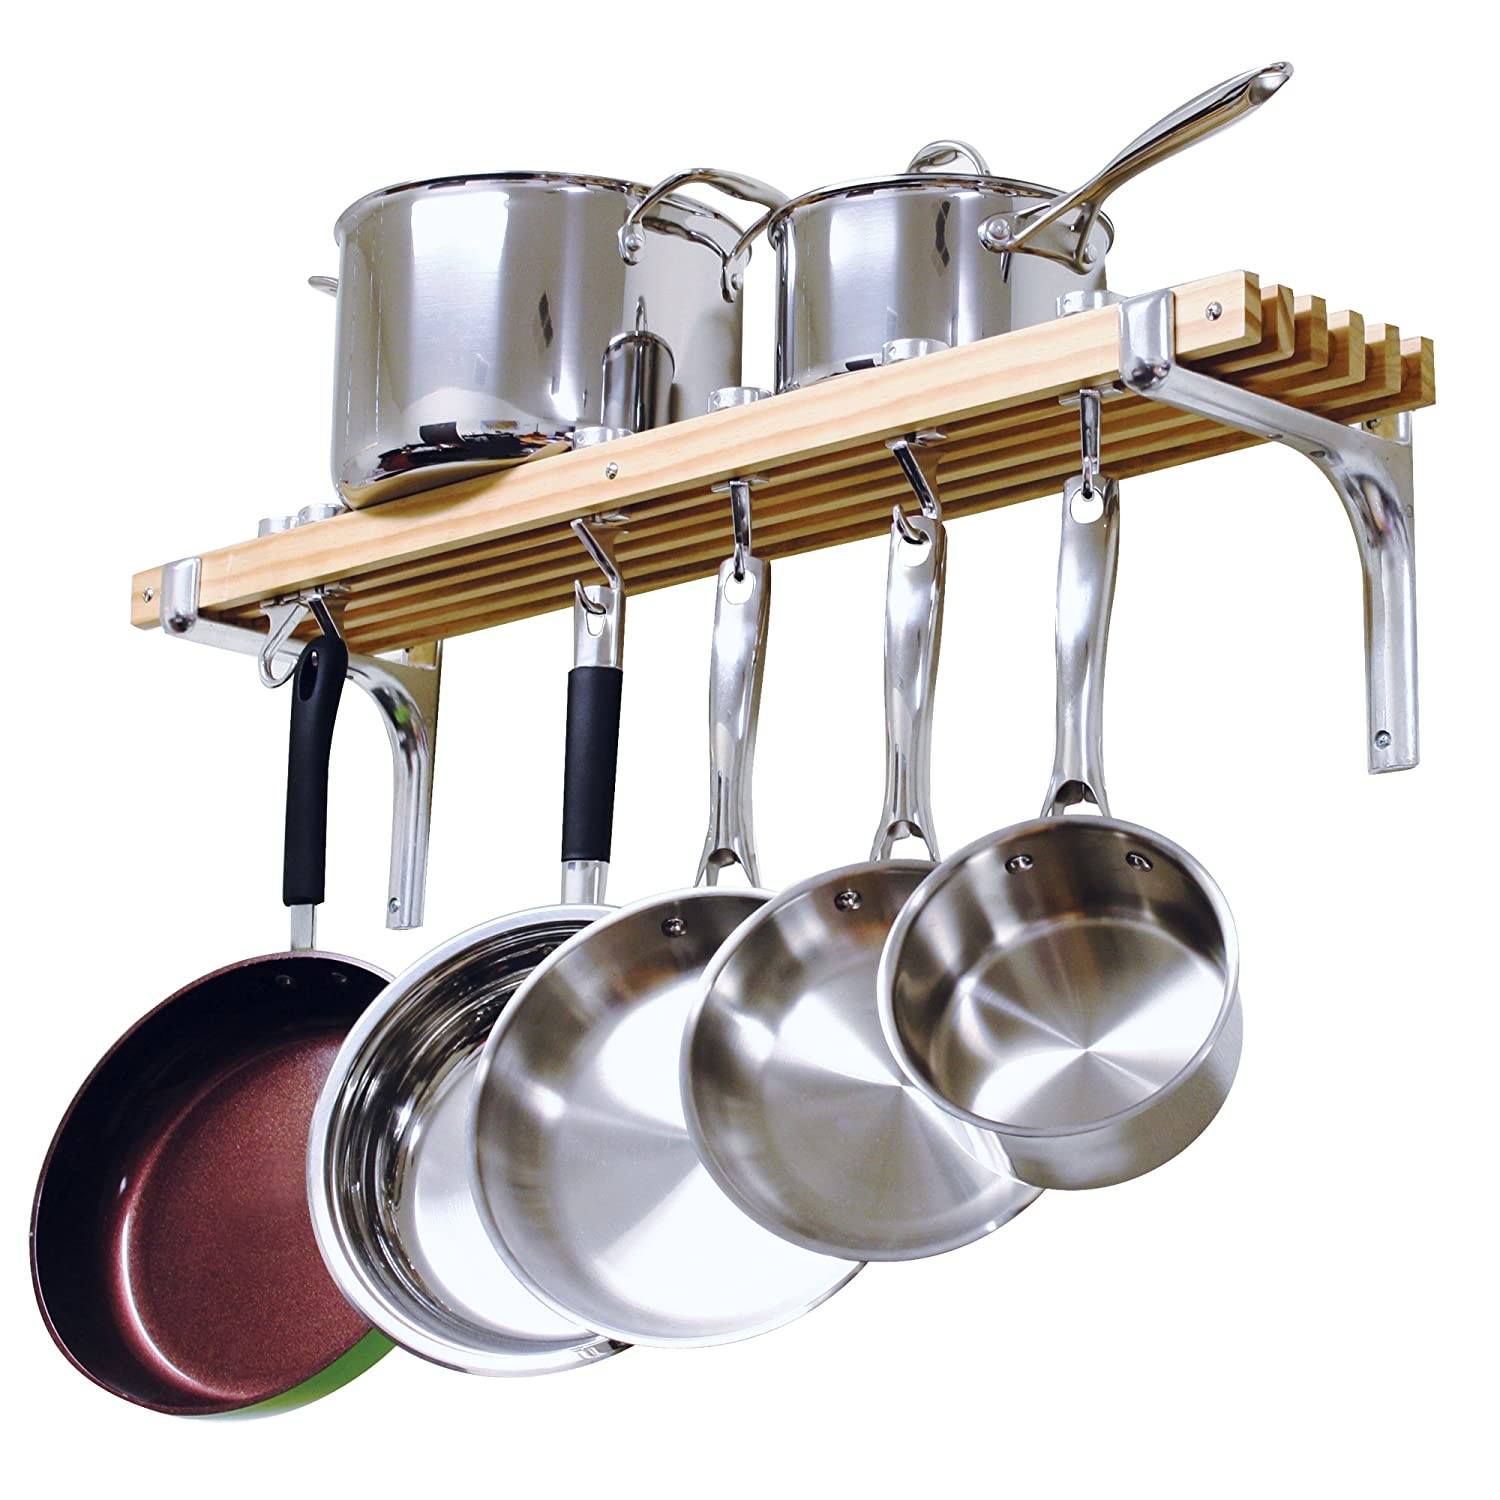 hangers rustic and out pull sale pan pans holder flower for pots kitchen hanging light rack fantastic fixture wall pot